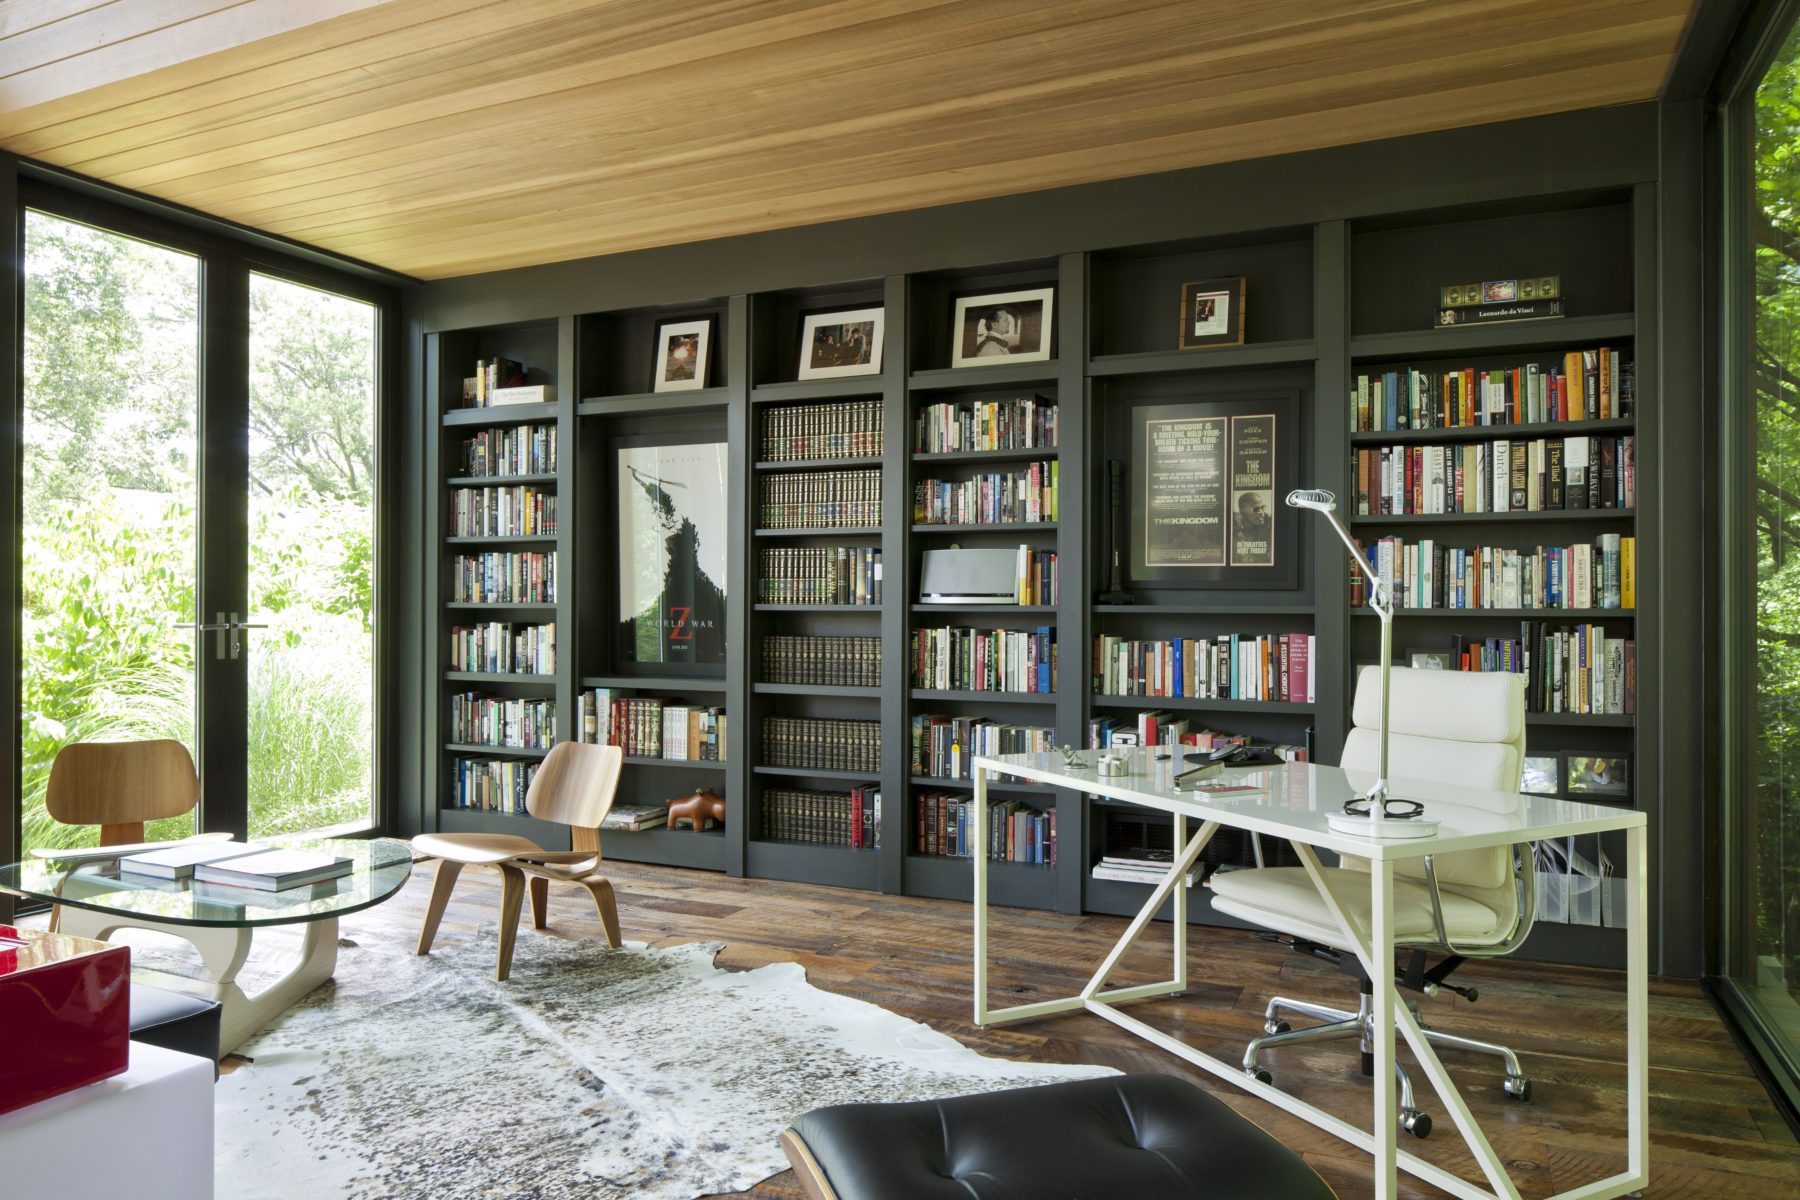 Comfortable Harrison Design atelier has contemporary furniture and desk and black bookcases for reference library